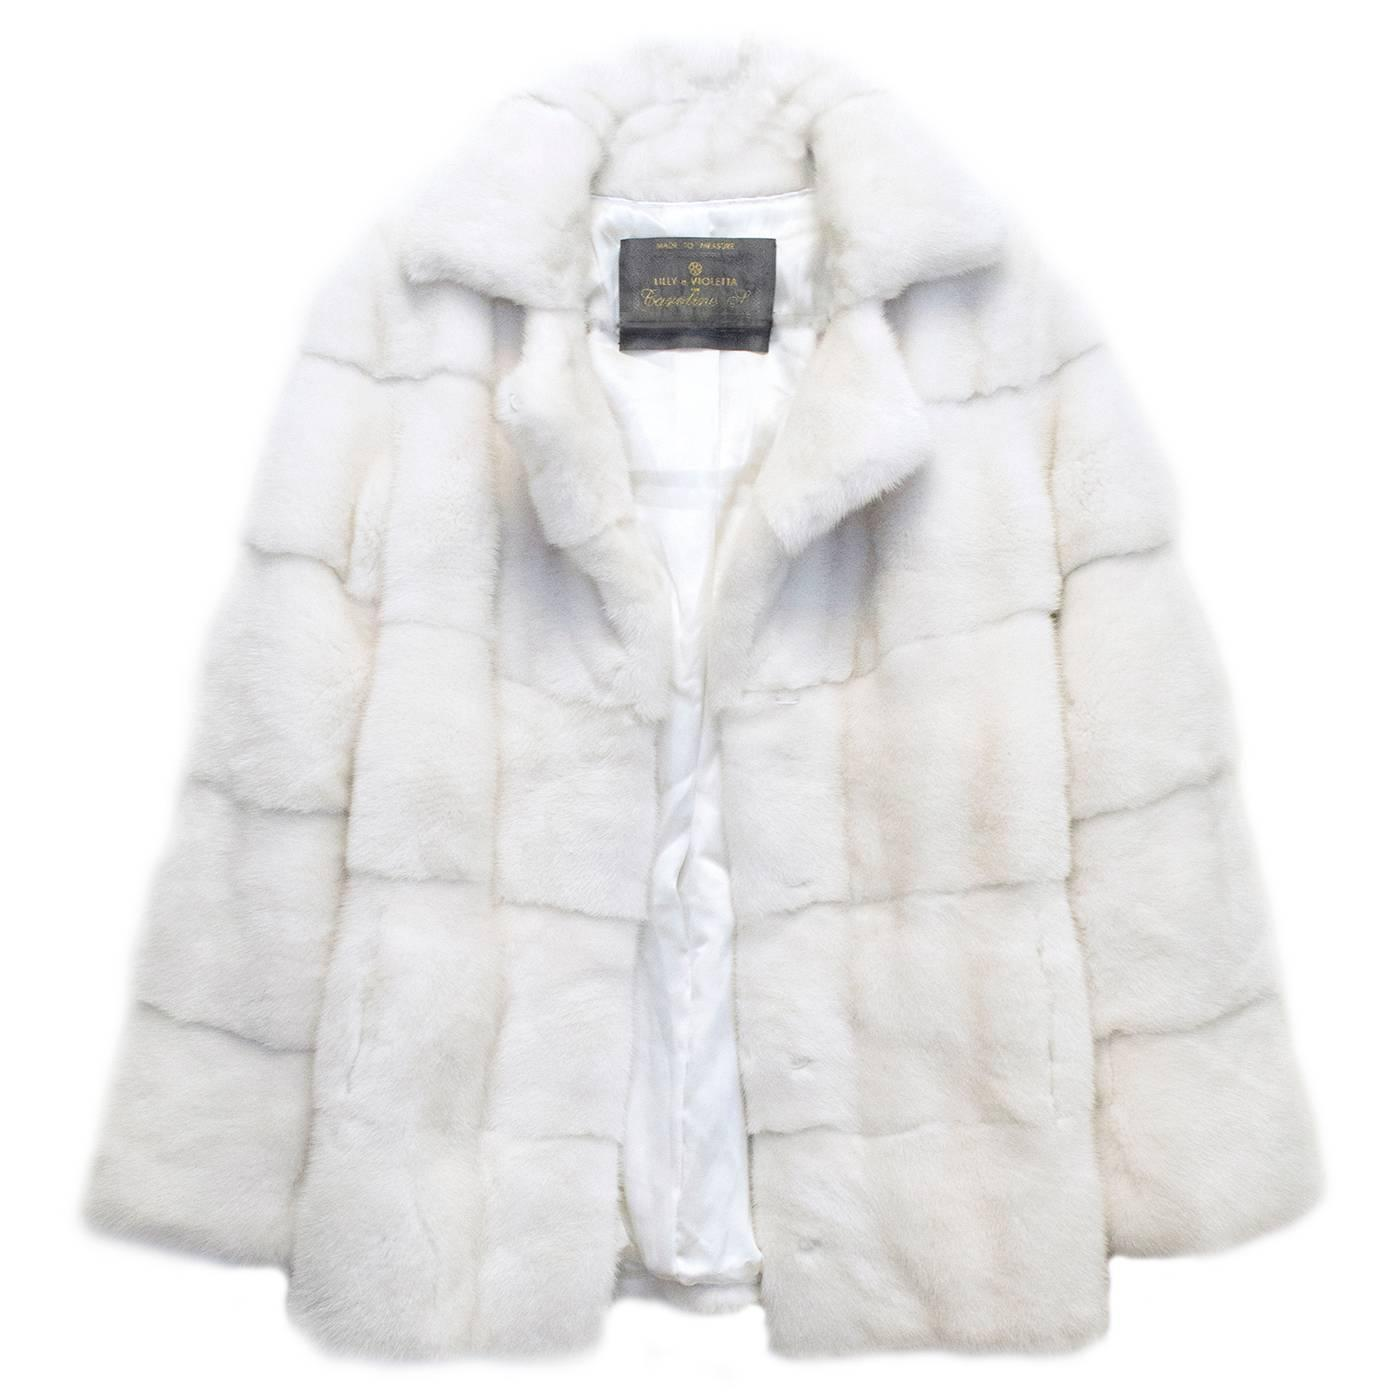 Lilly e Violetta White Natural Mink Fur Coat For Sale at 1stdibs